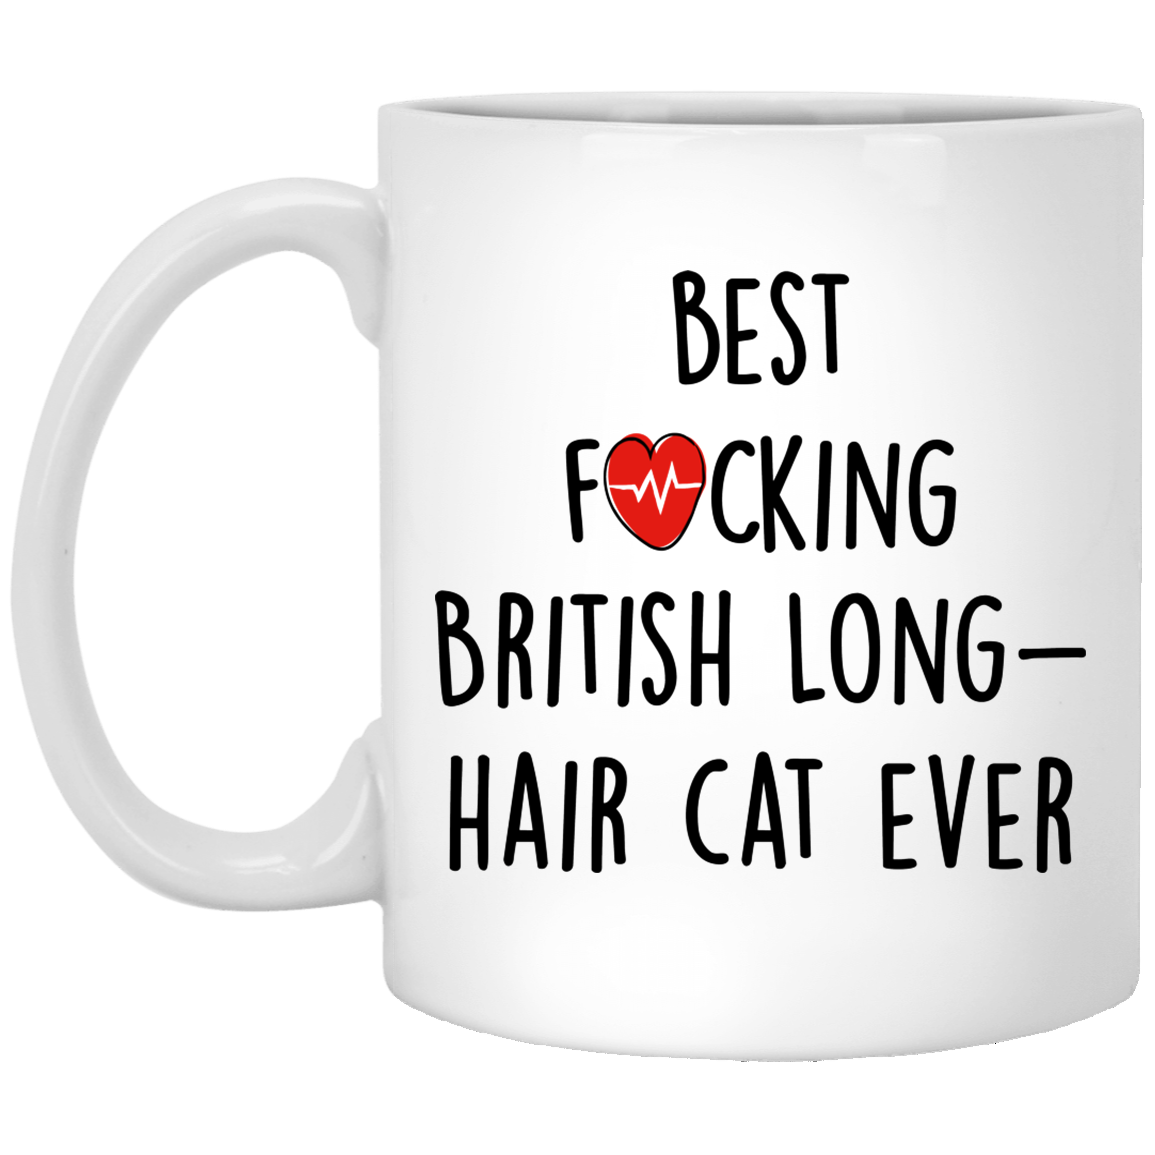 Funny-Fuking-British-Longhair-cat-ever Funny Quotes Coffee Mug 99promocode